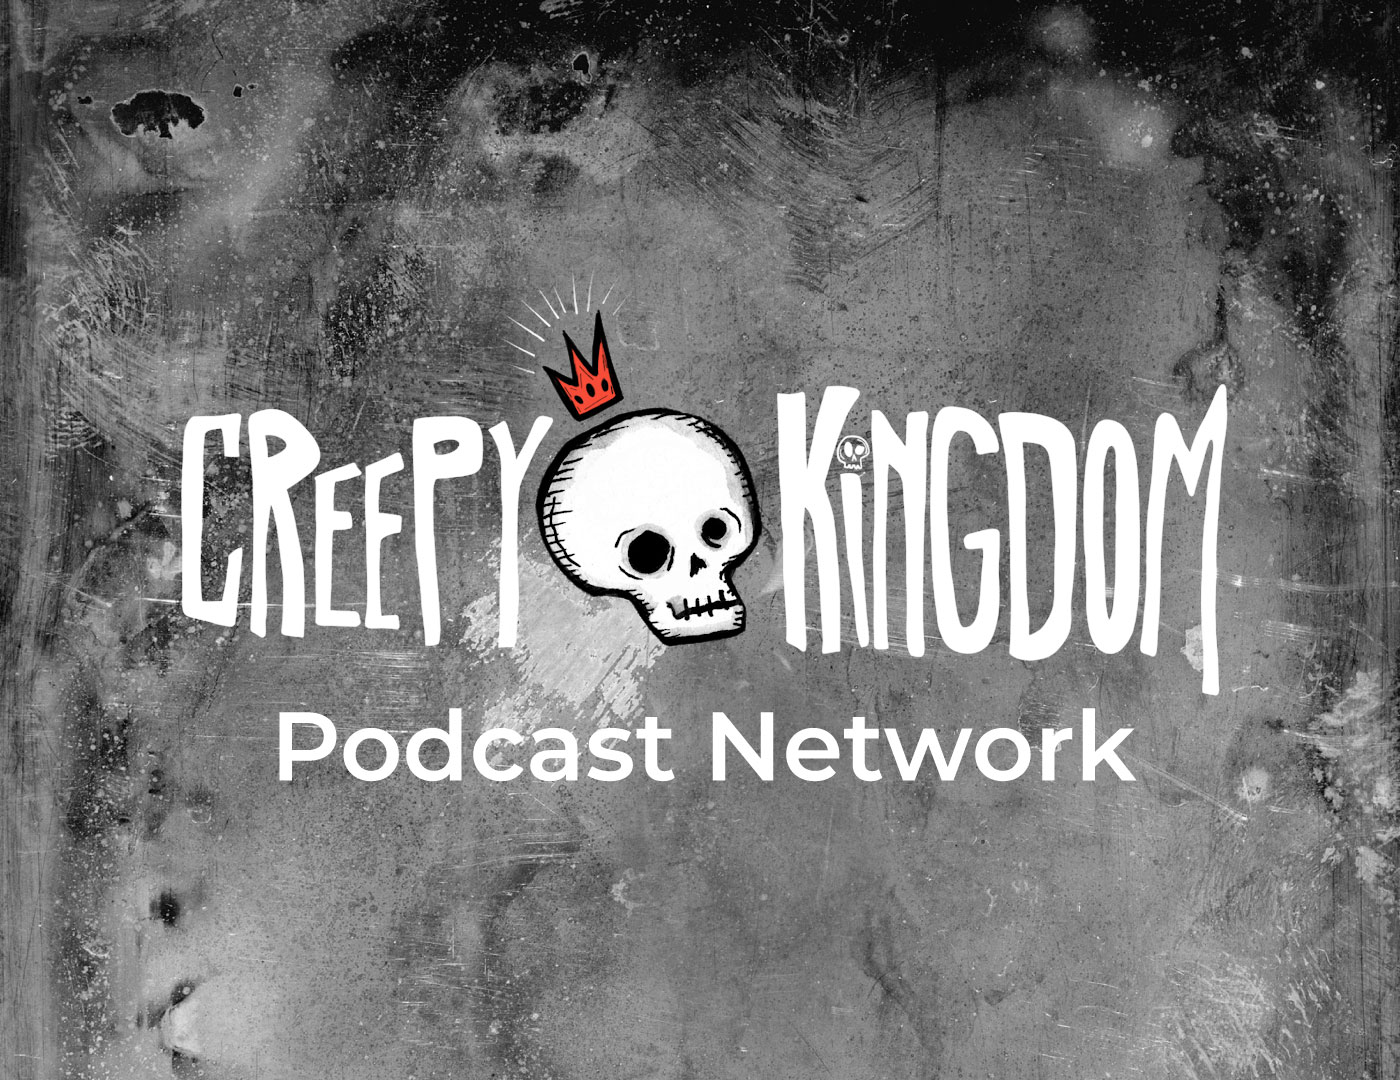 Graphic Design for the Creepy Kingdom Podcast Network